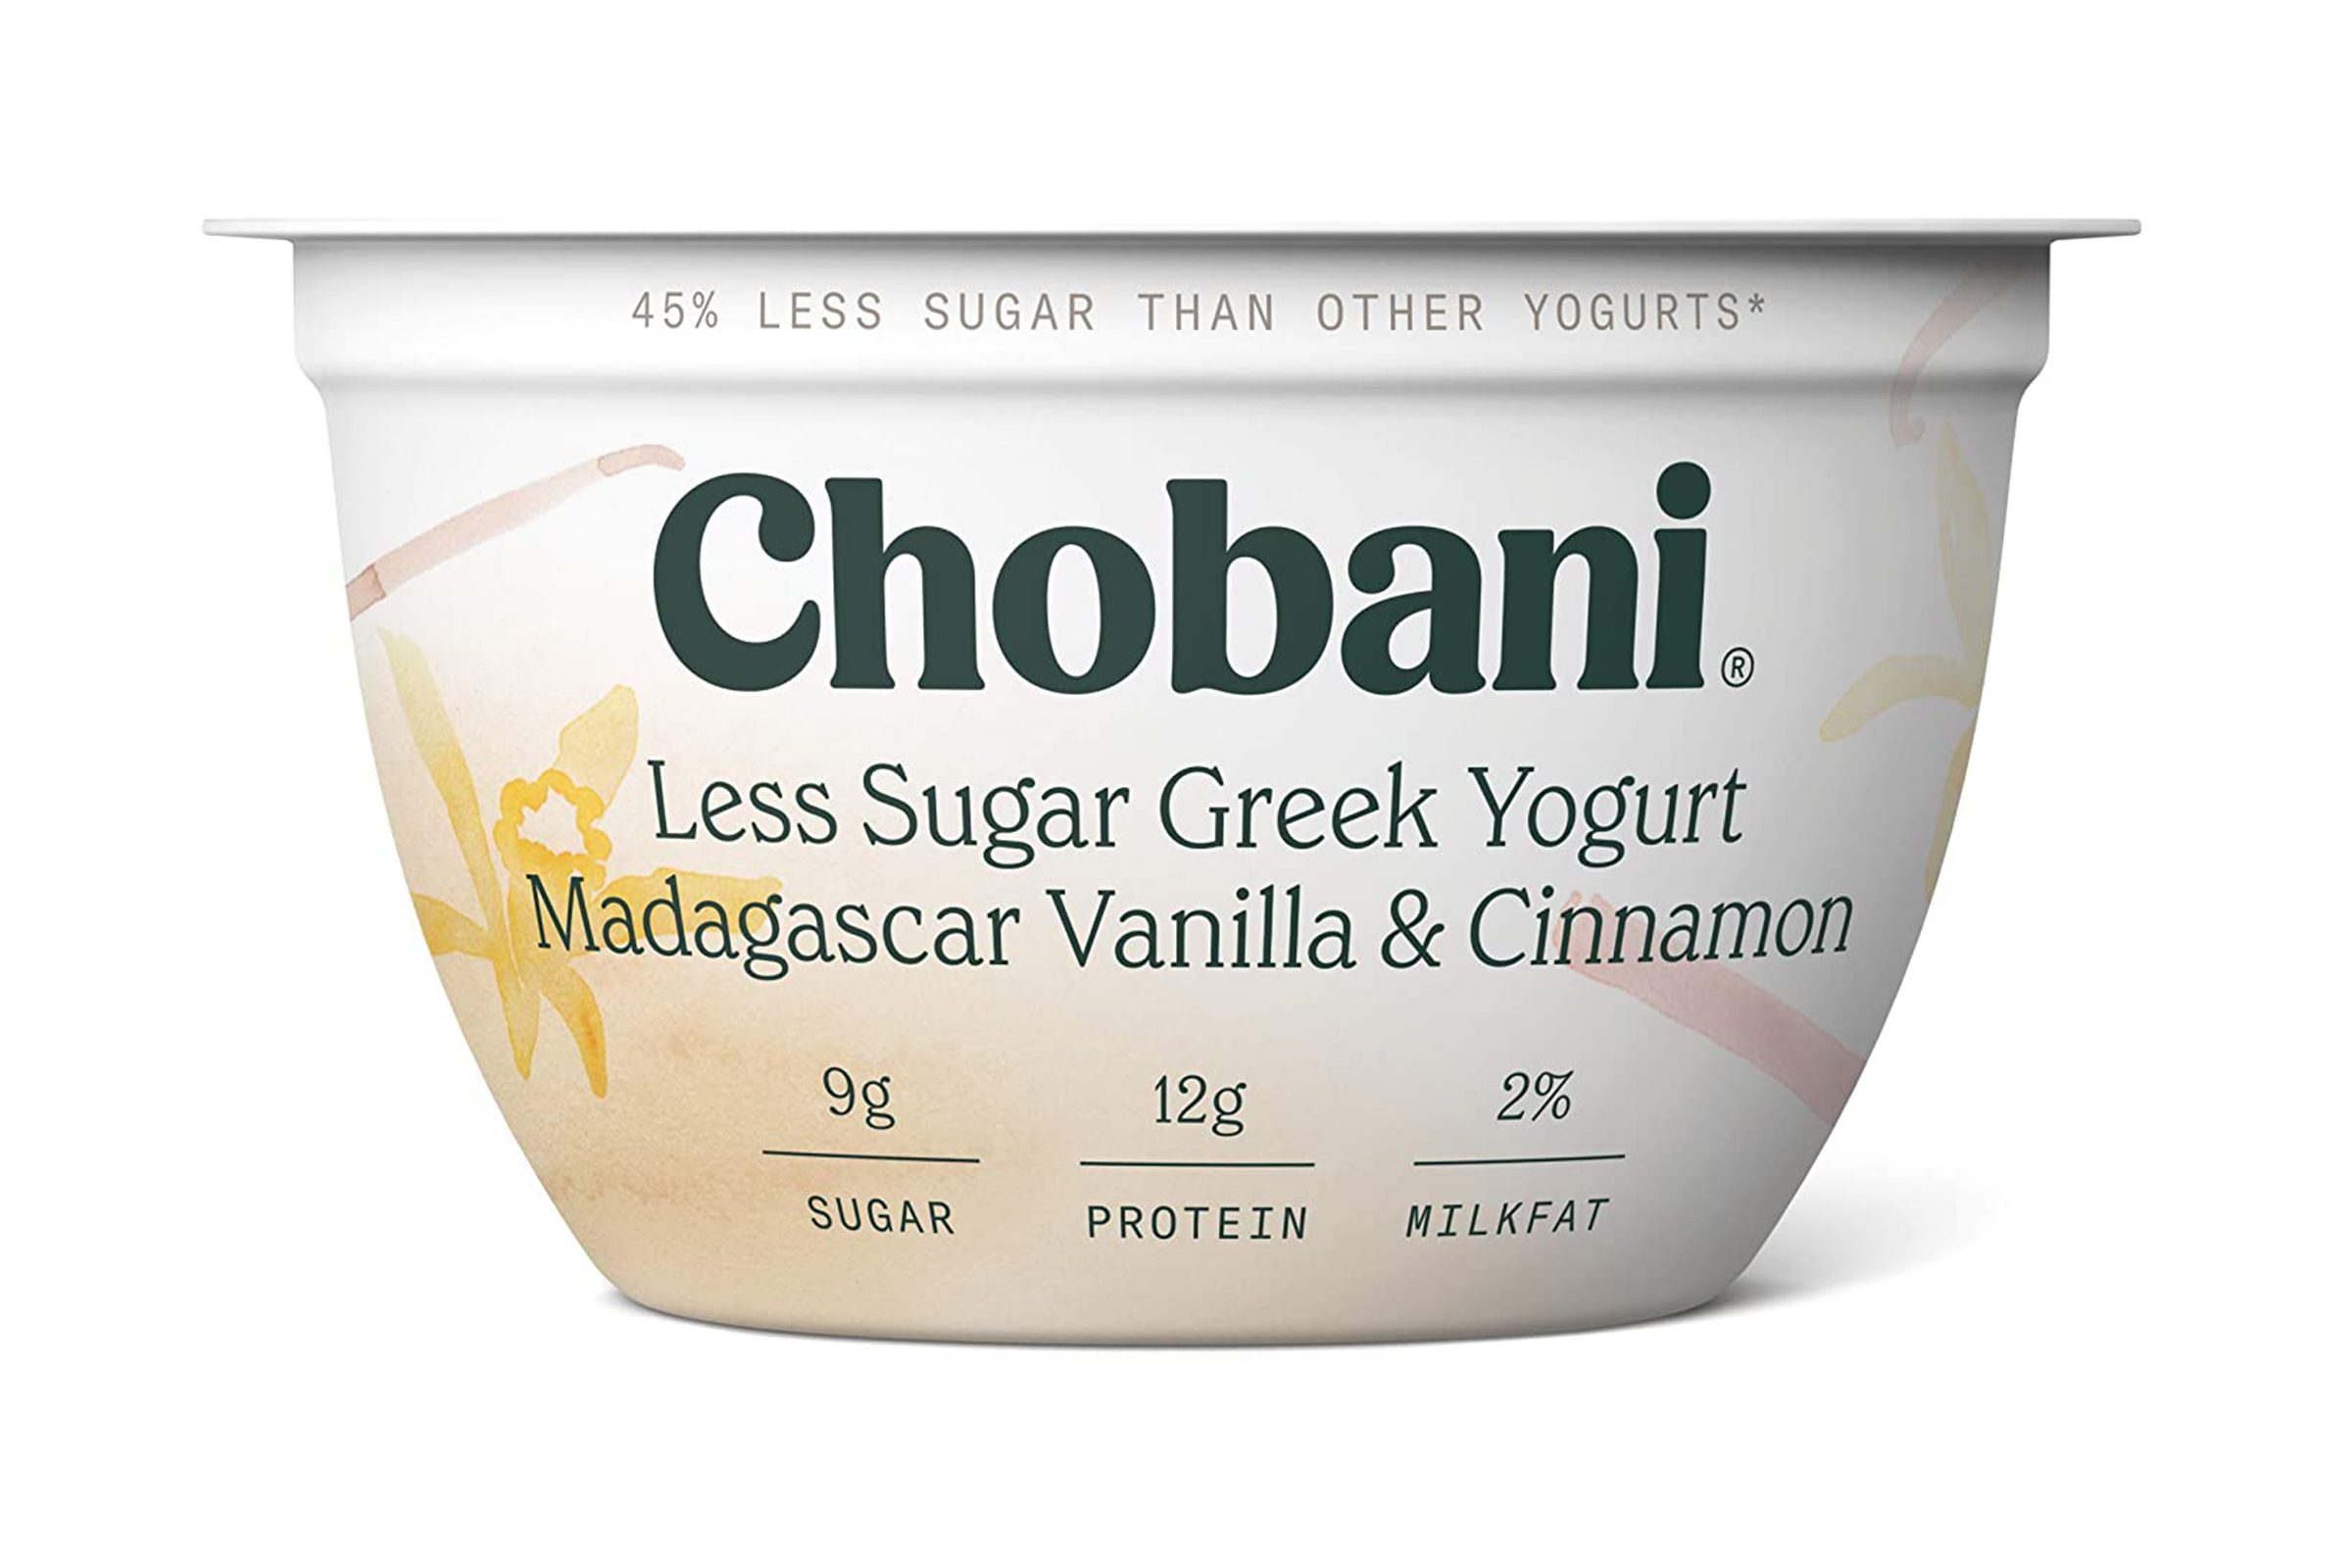 chobani less sugar greek yogurt